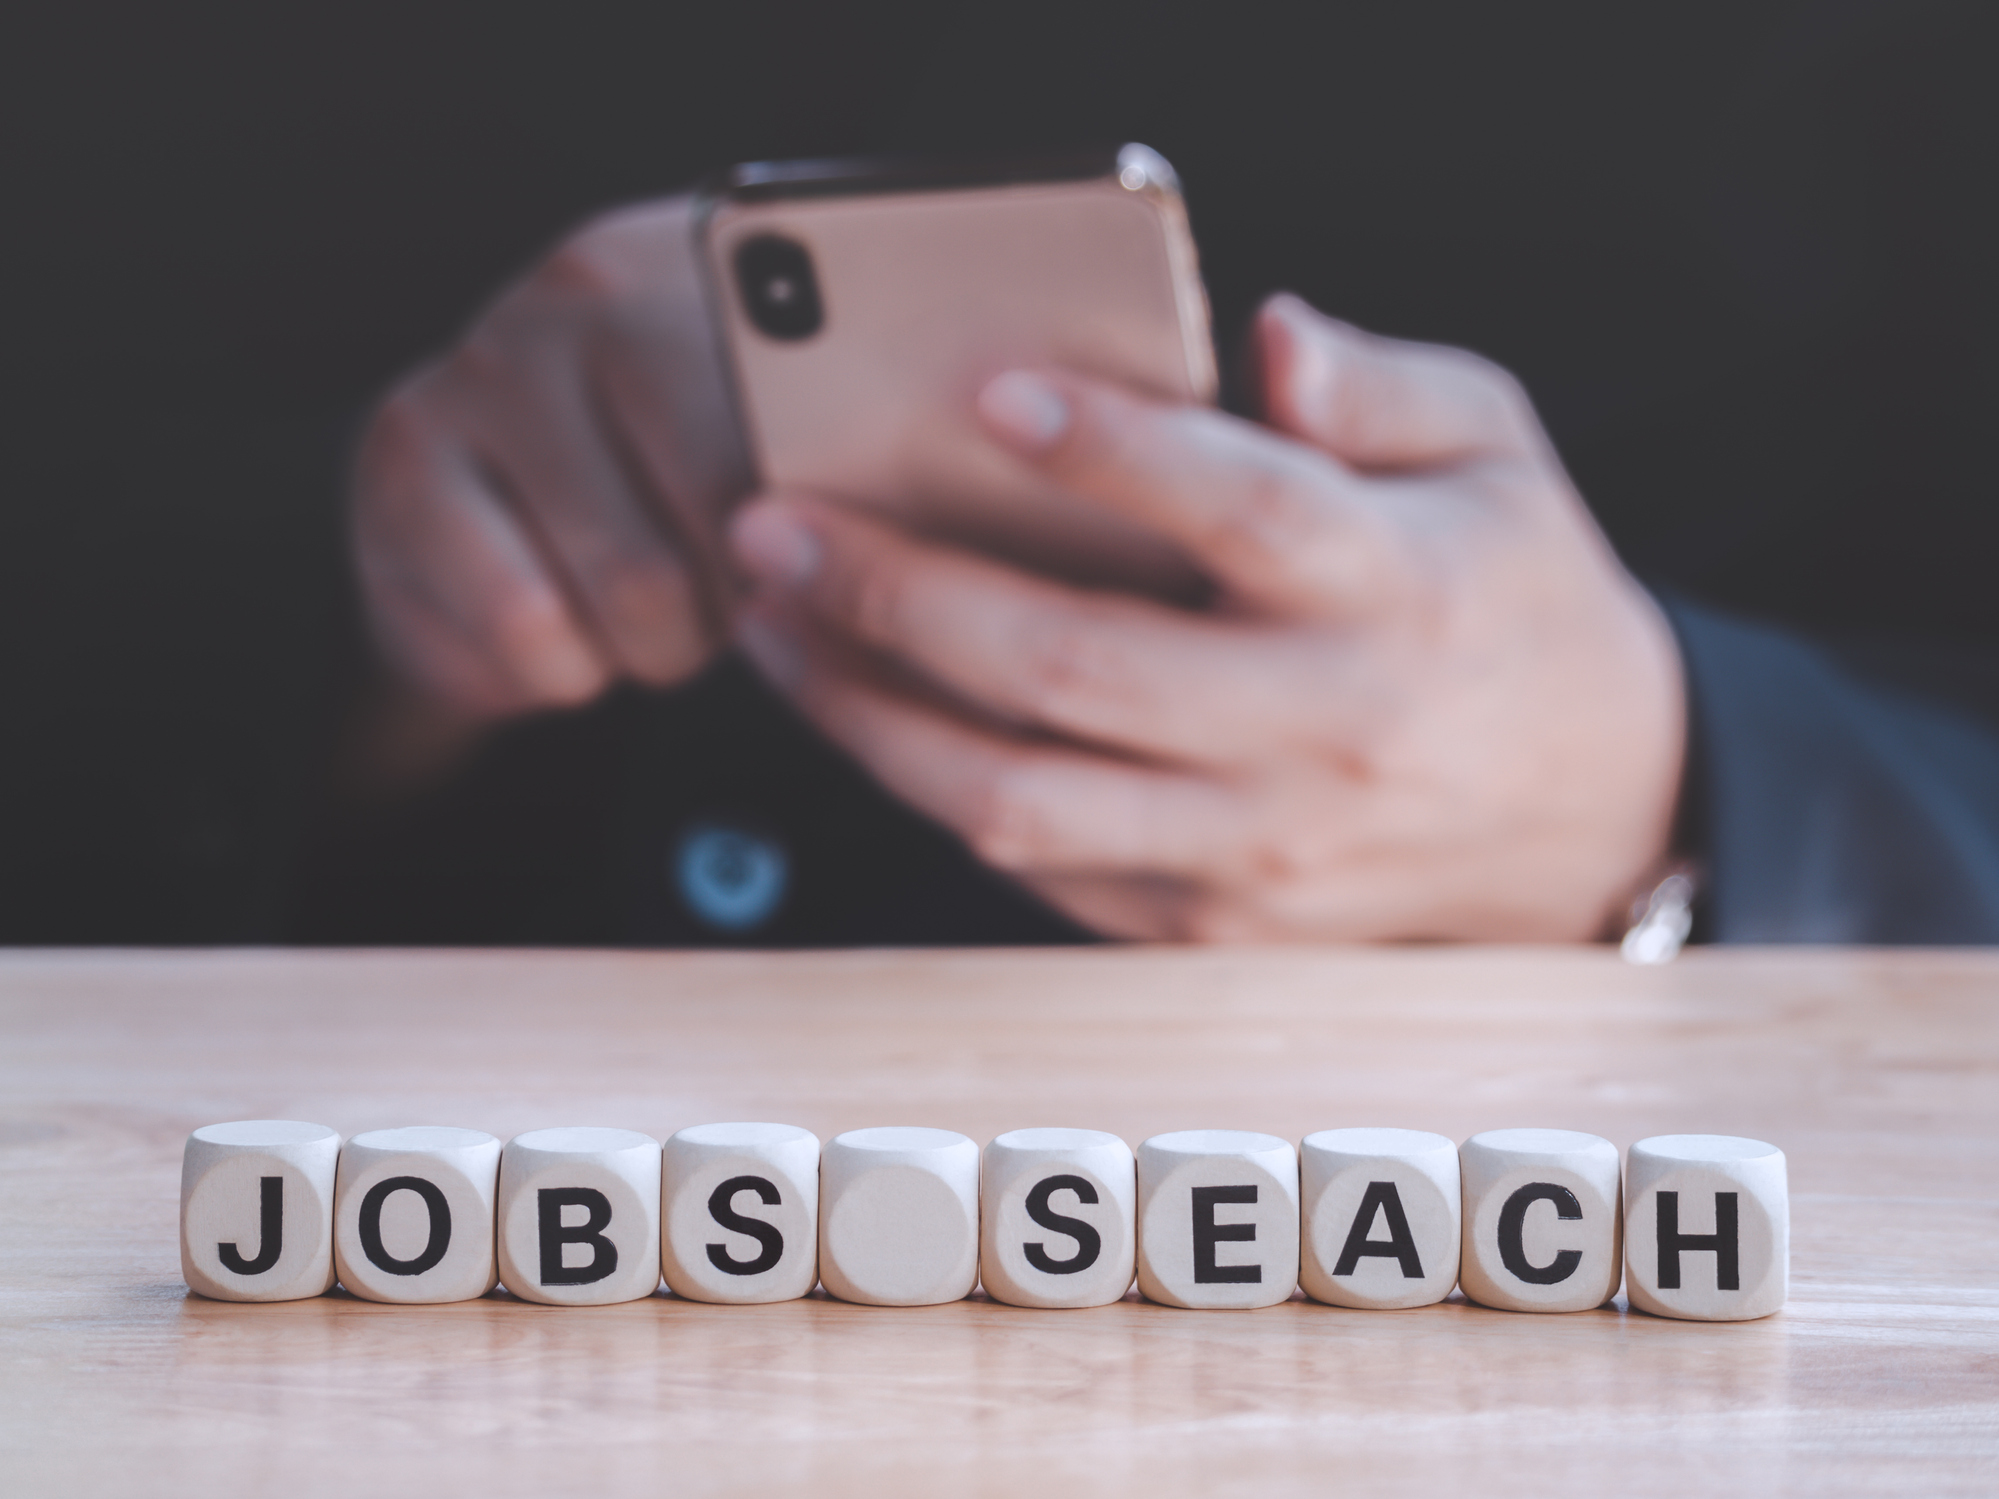 Closeup wooden block written Jobs Search on table against bussinessman using smart phone to find new jobs and application. Employment concept.